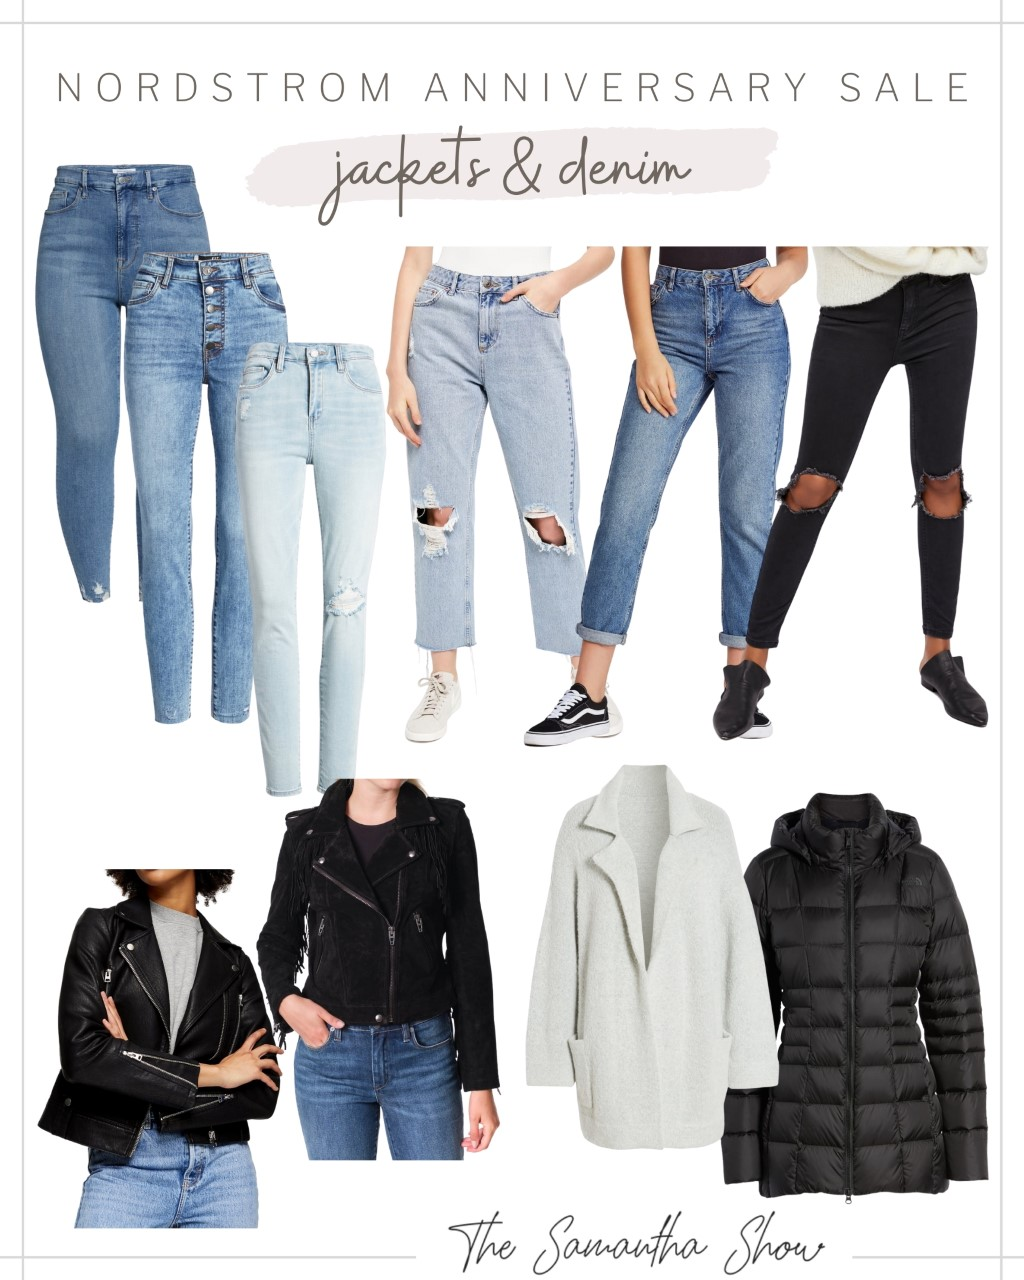 Nordstrom Anniversary Sale: Denim and Jackets